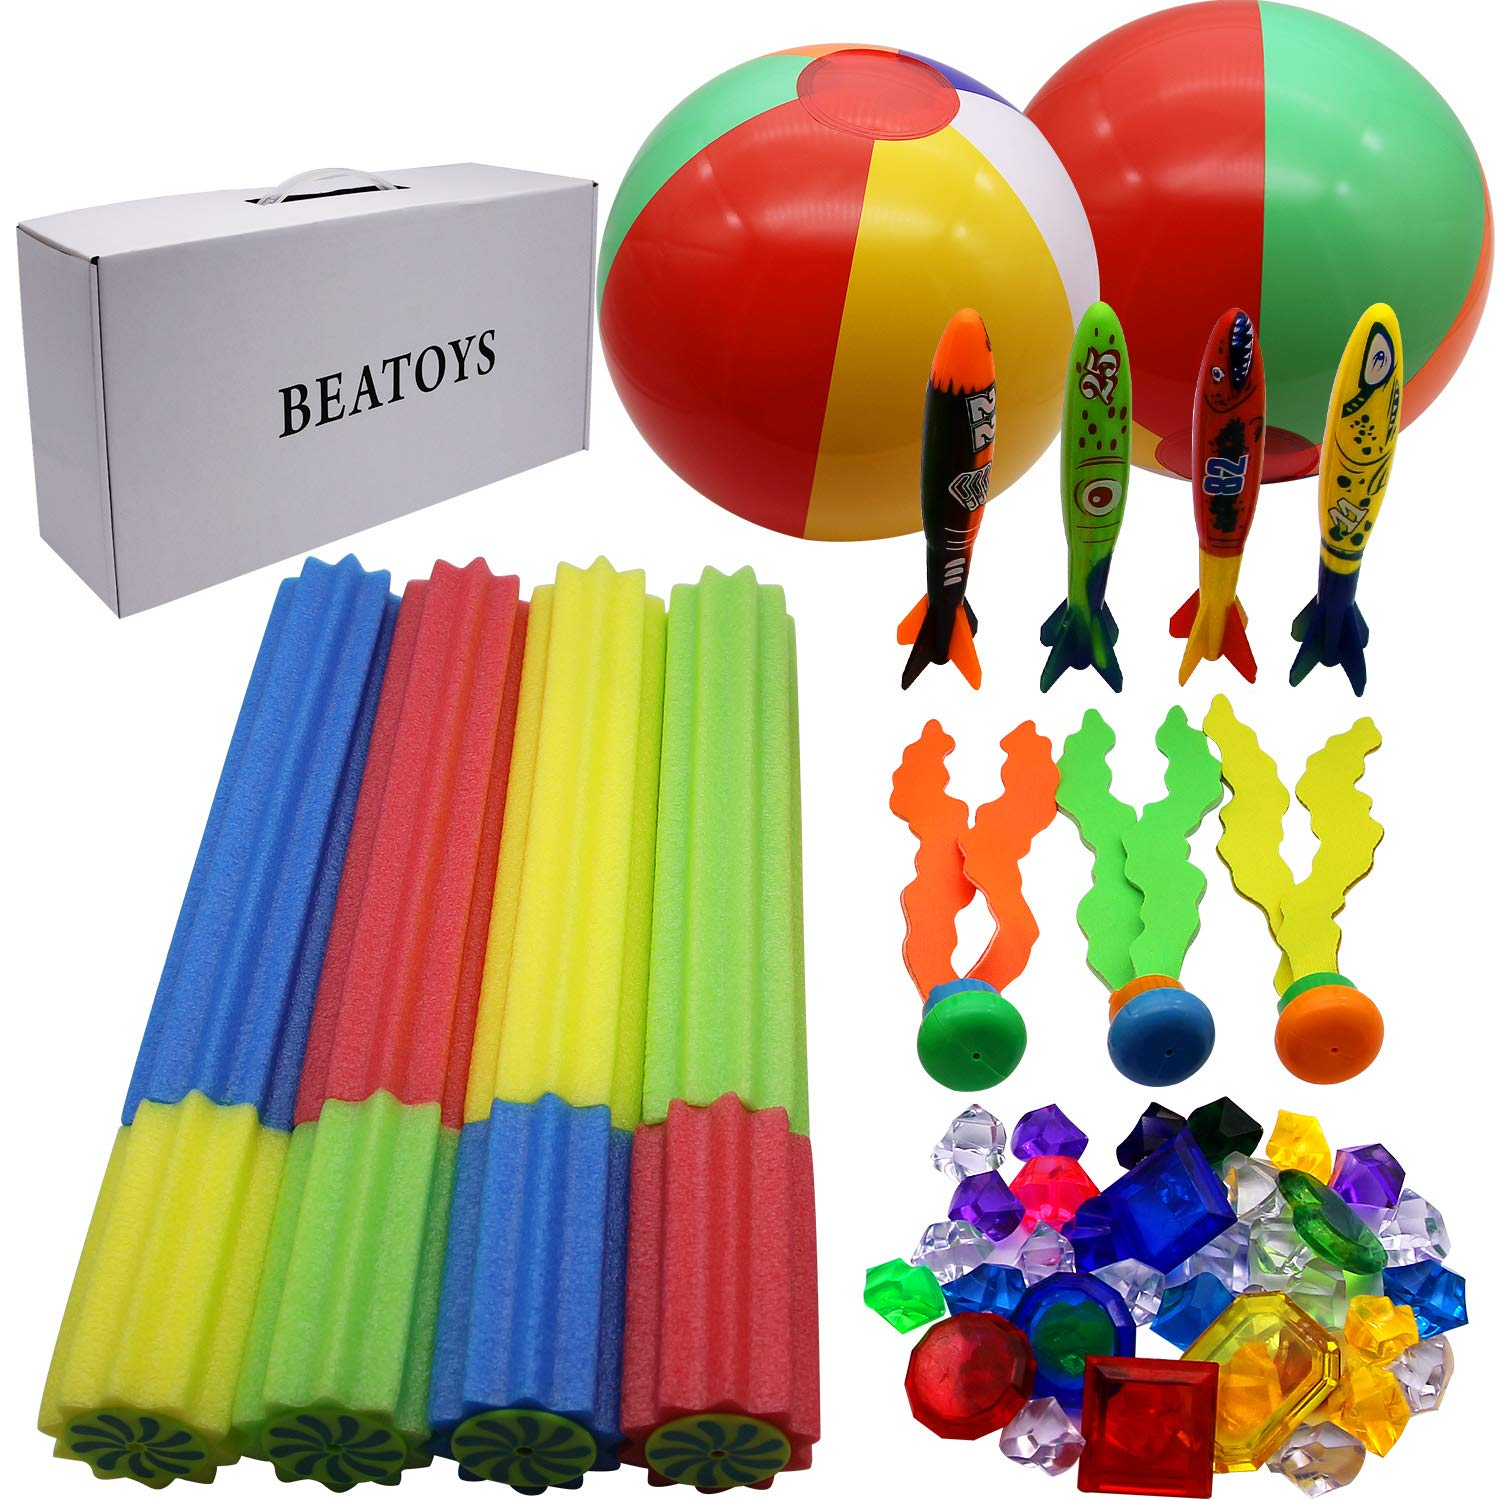 JOINBO BEATOYS 41 PCS Summer Diving Sets with 4 Water Blaster, 4 Torpedoes, 3 Diving Seaweeds, 2 Beach Balls, 8 gems and 20 Diving Jewels by JOINBO